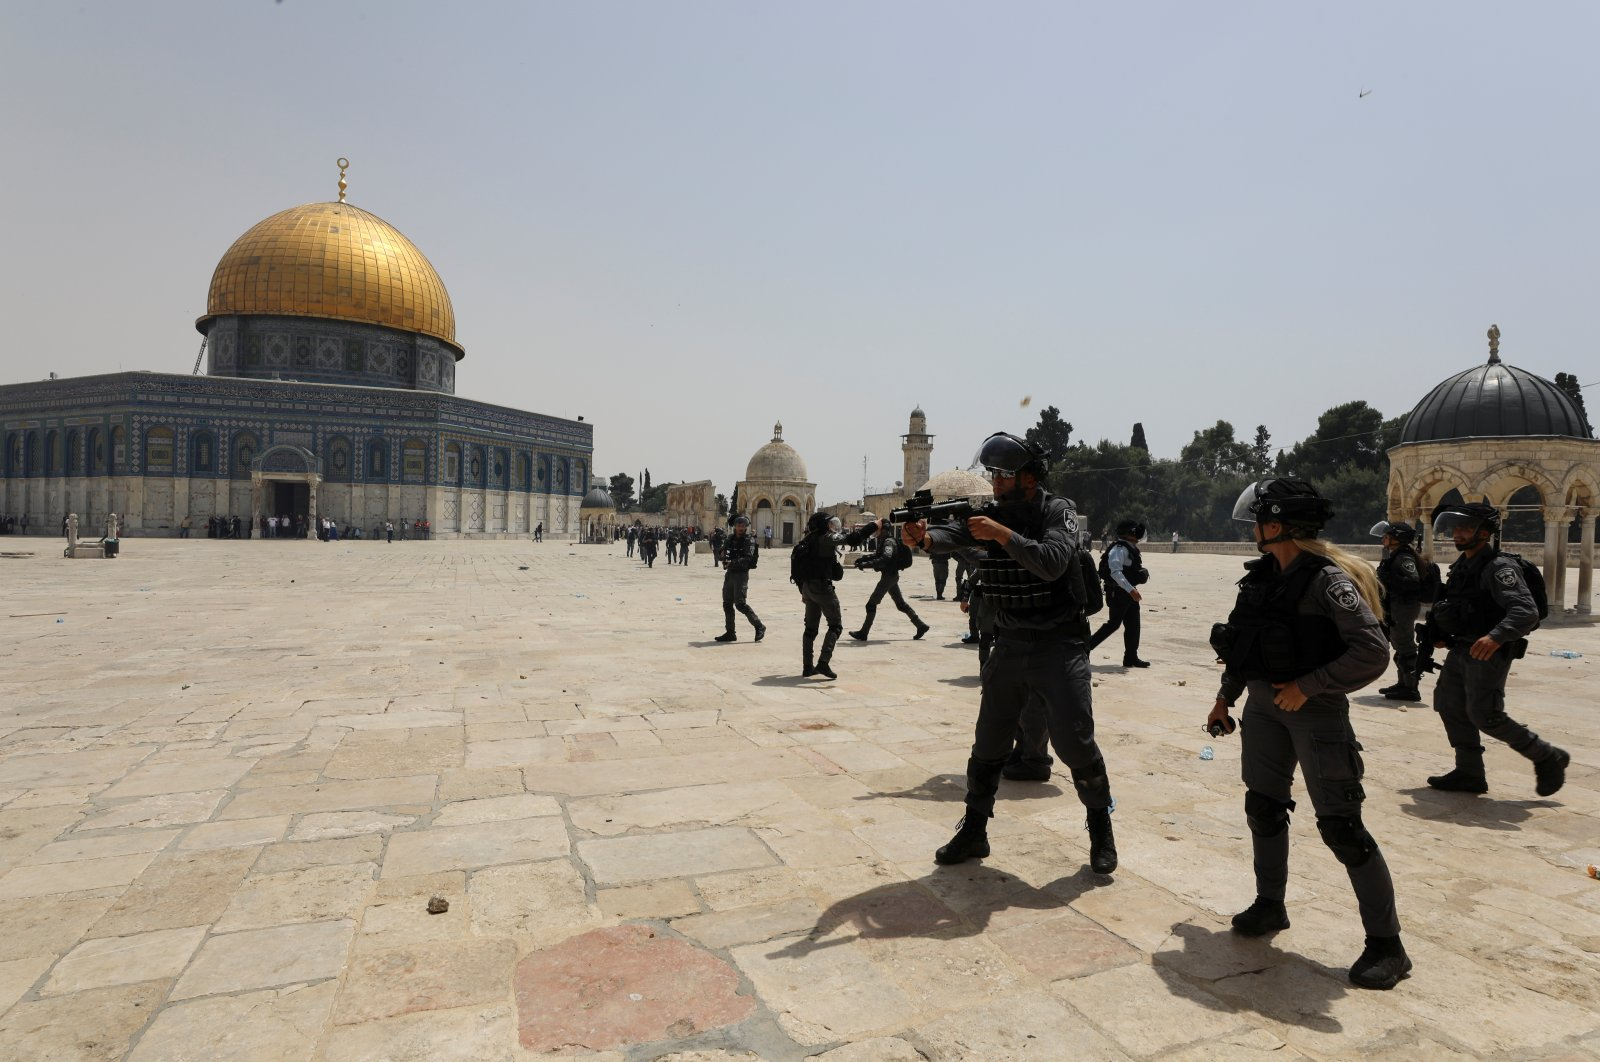 Israeli security forces stand in position during clashes with Palestinians at the compound that houses Al-Aqsa Mosque, known to Muslims as the Noble Sanctuary and to Jews as Temple Mount, in the Old City neighborhood of East Jerusalem, occupied Palestine, May 21, 2021. (Reuters Photo)